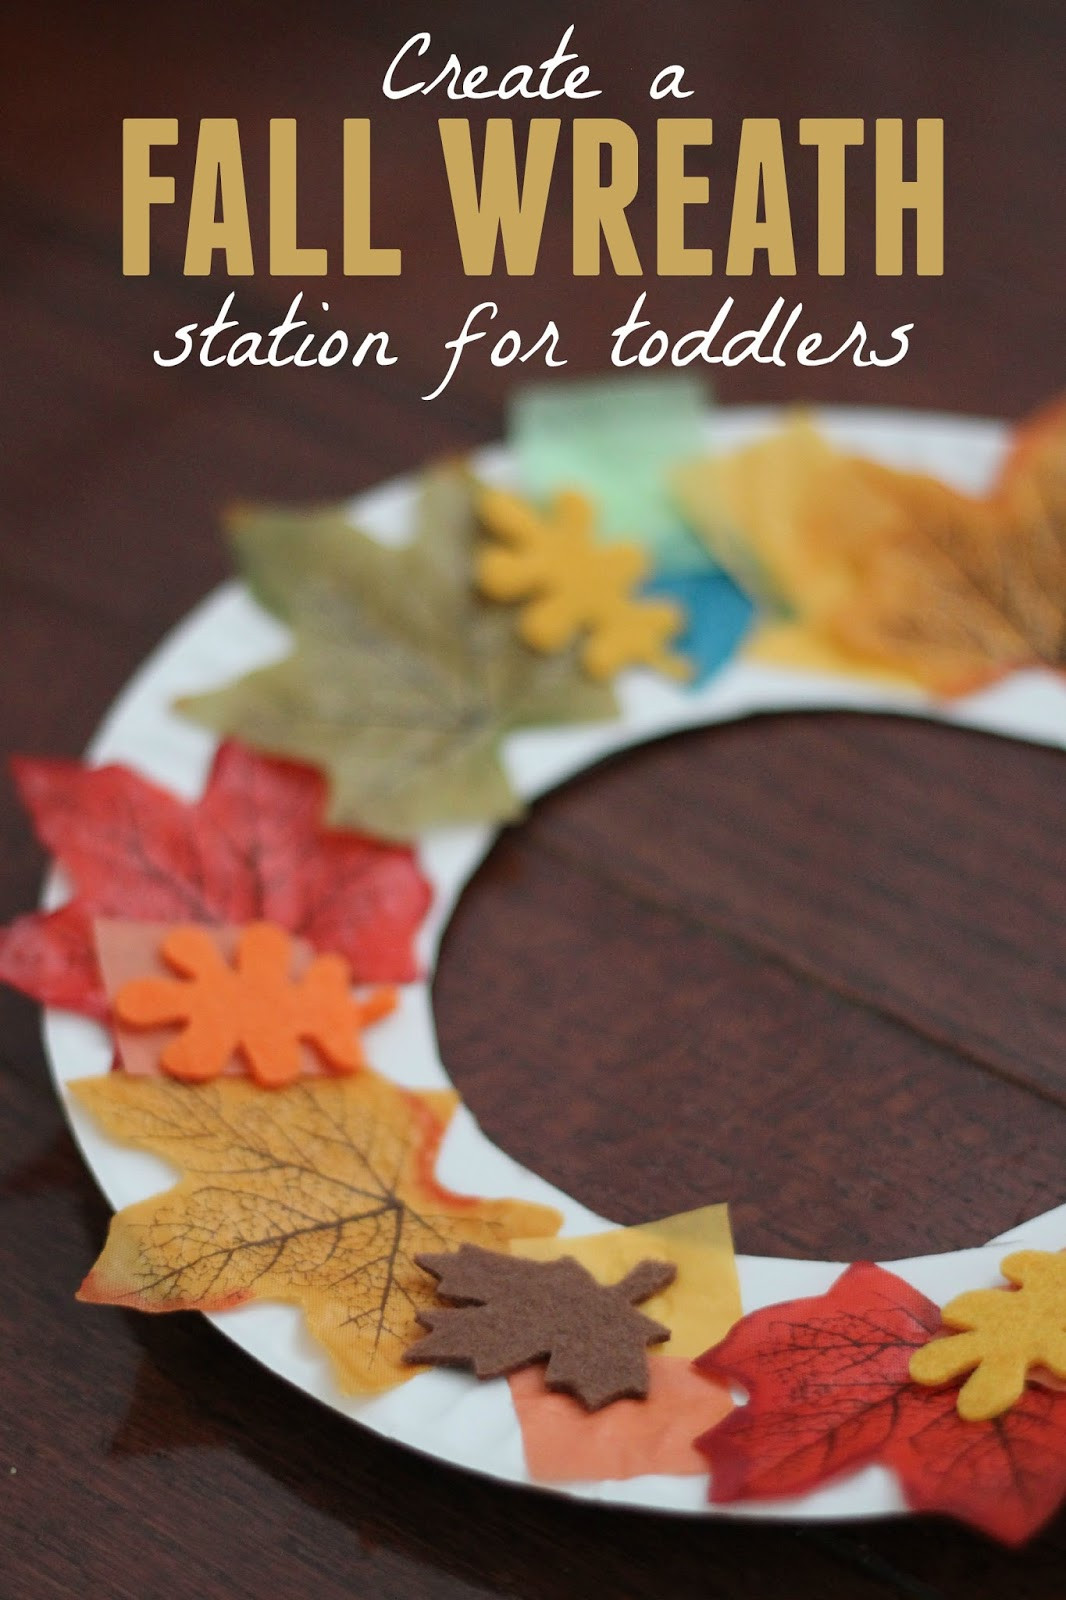 Fall Art Projects For Kids  Toddler Approved Fall Wreath Making Station for Toddlers